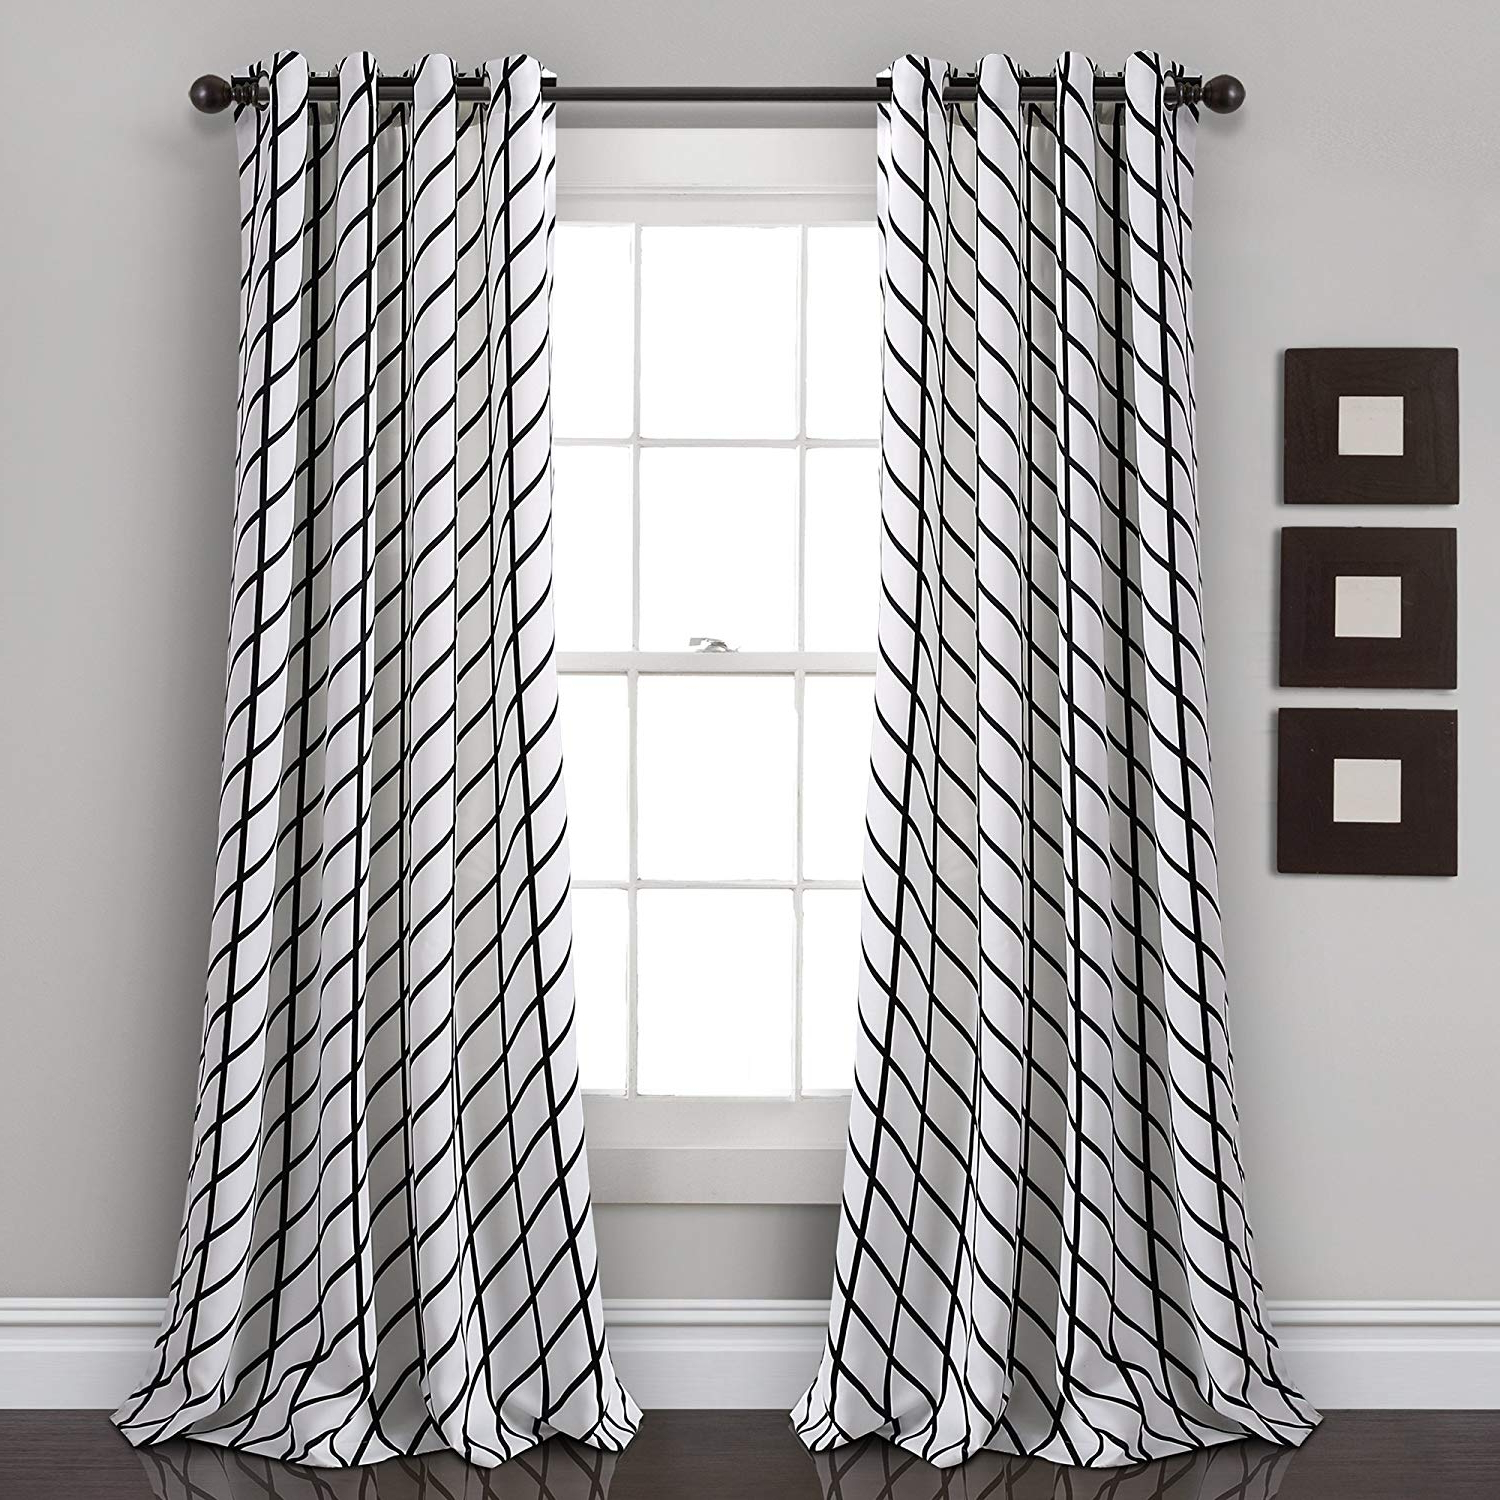 """Best And Newest Edward Moroccan Pattern Room Darkening Curtain Panel Pairs Throughout Lush Decor Feather Arrow Geo Room Darkening Window Curtain Panel Pair 84"""" X 52"""" White & Black (View 11 of 20)"""